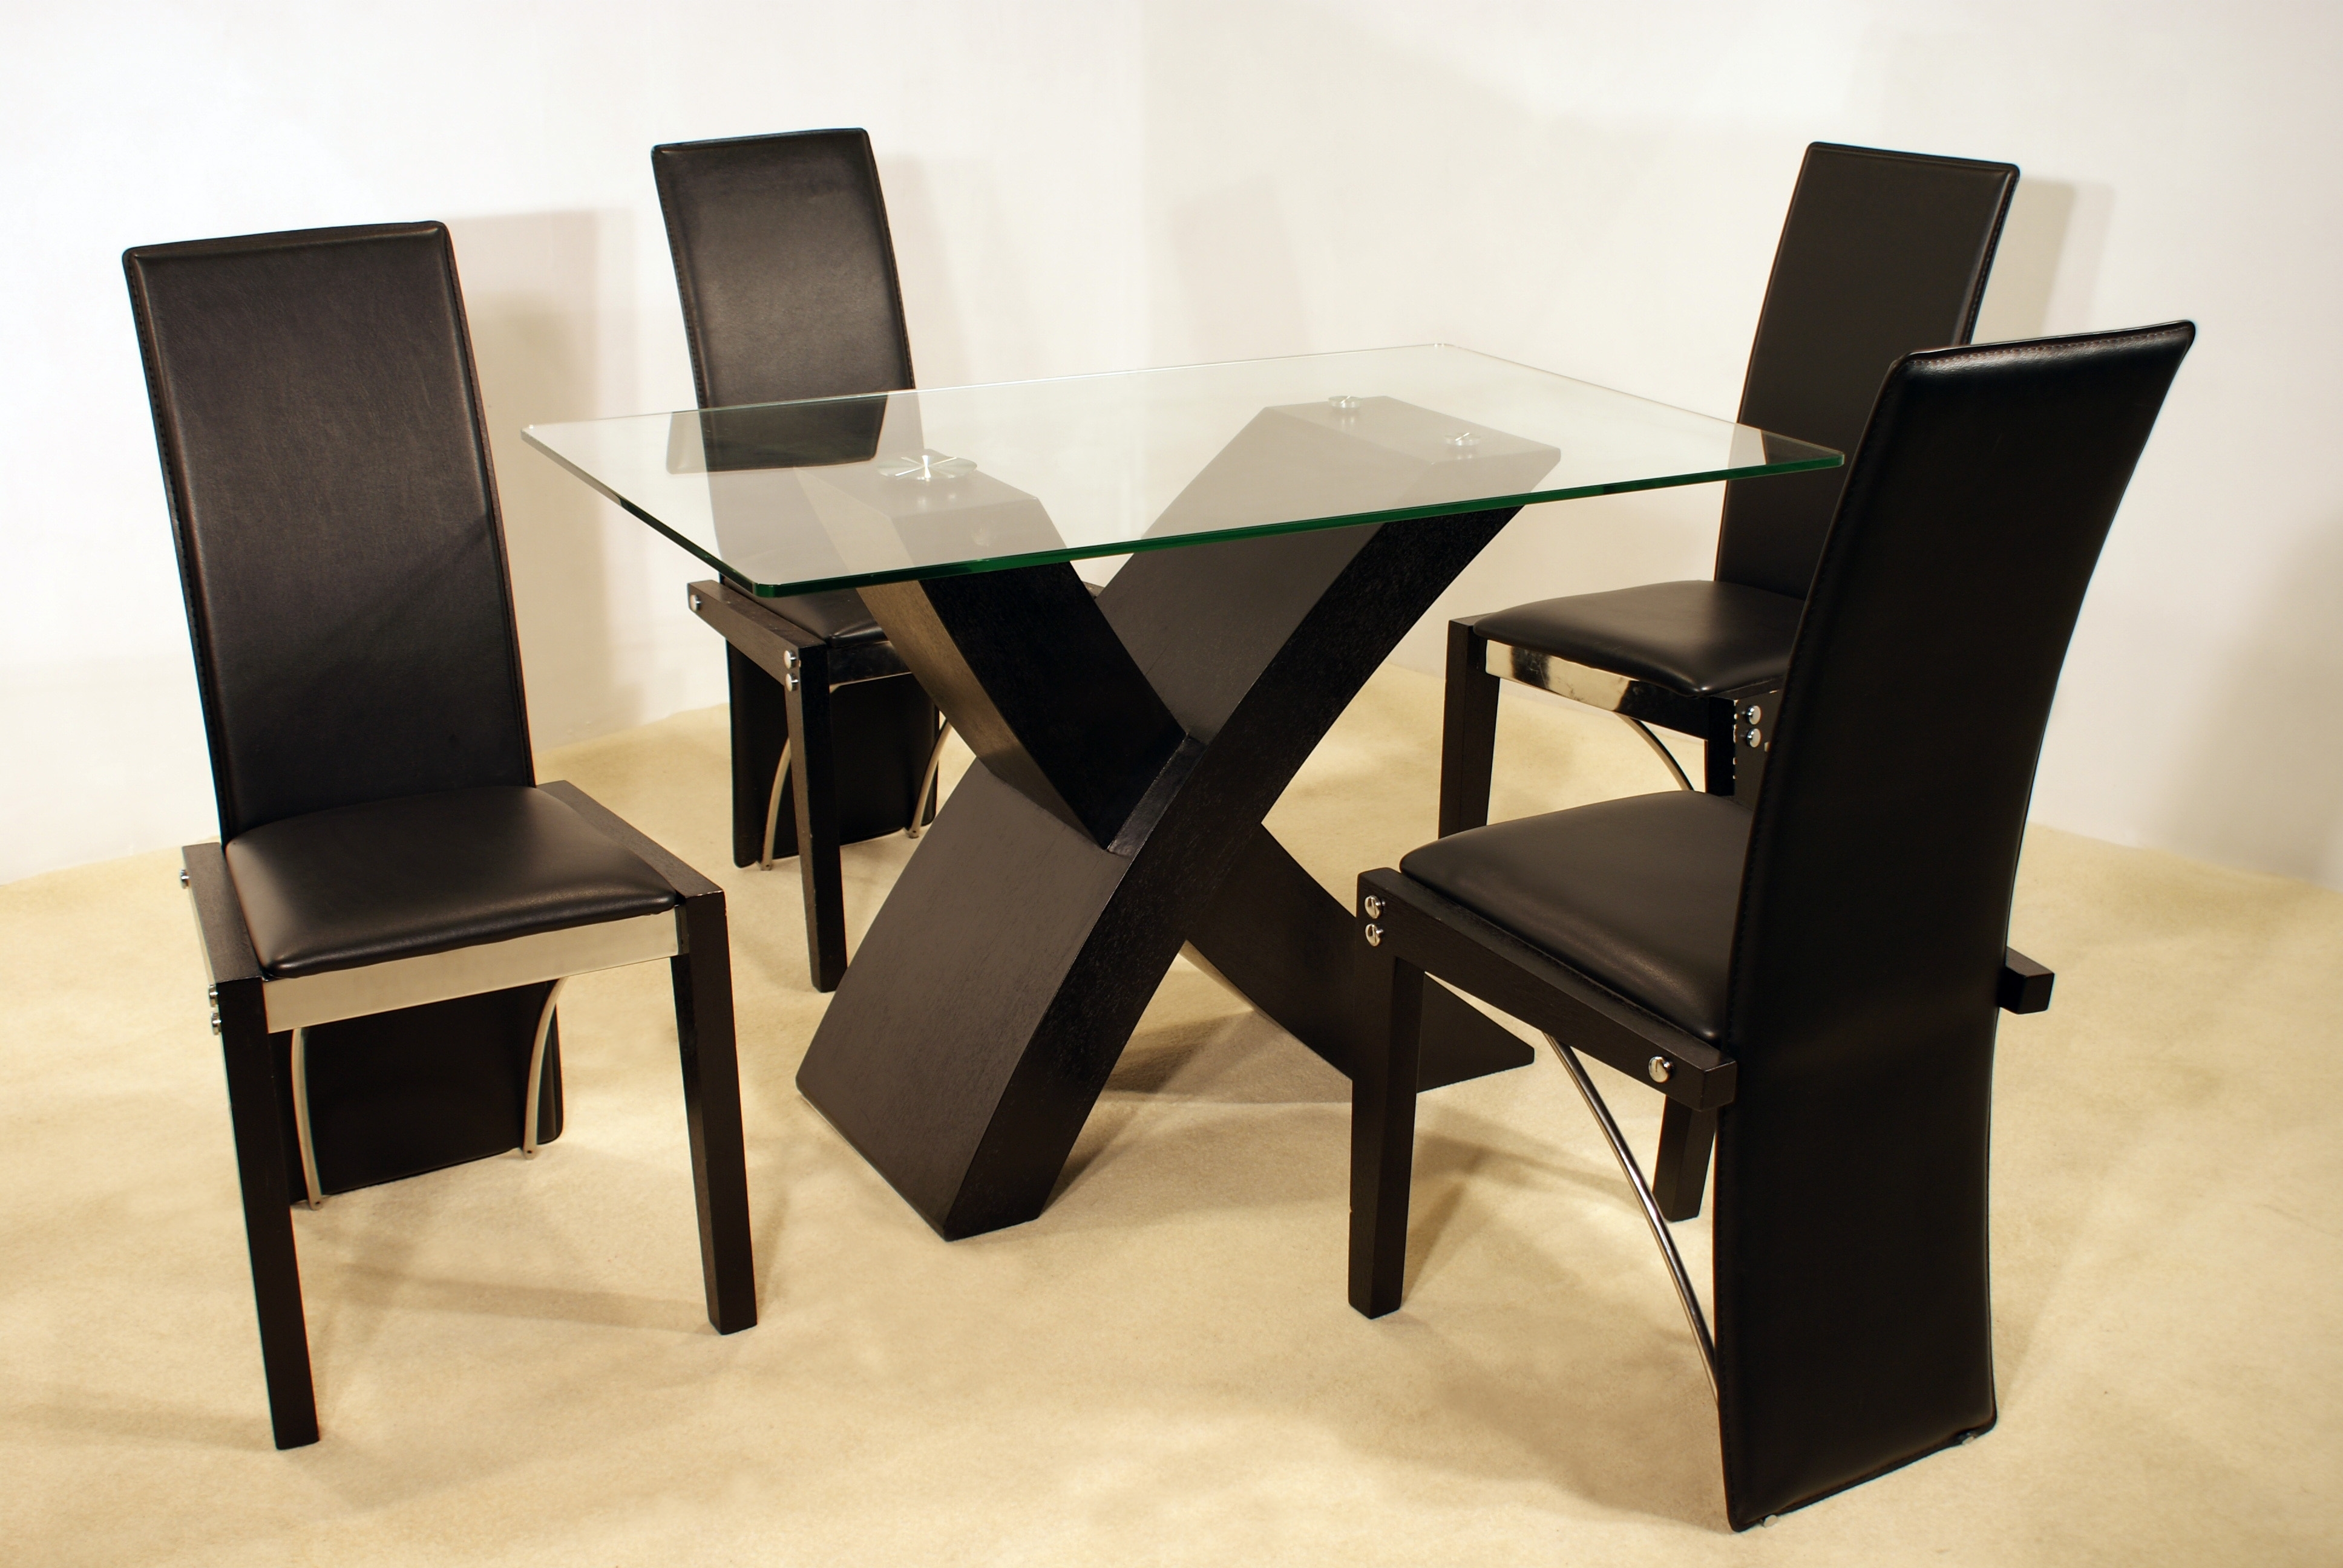 Well Known Cheap Glass Dining Tables And 4 Chairs In Arizona Black Dining Set With 4 Chairs – Cheap Home Furniture (View 19 of 25)